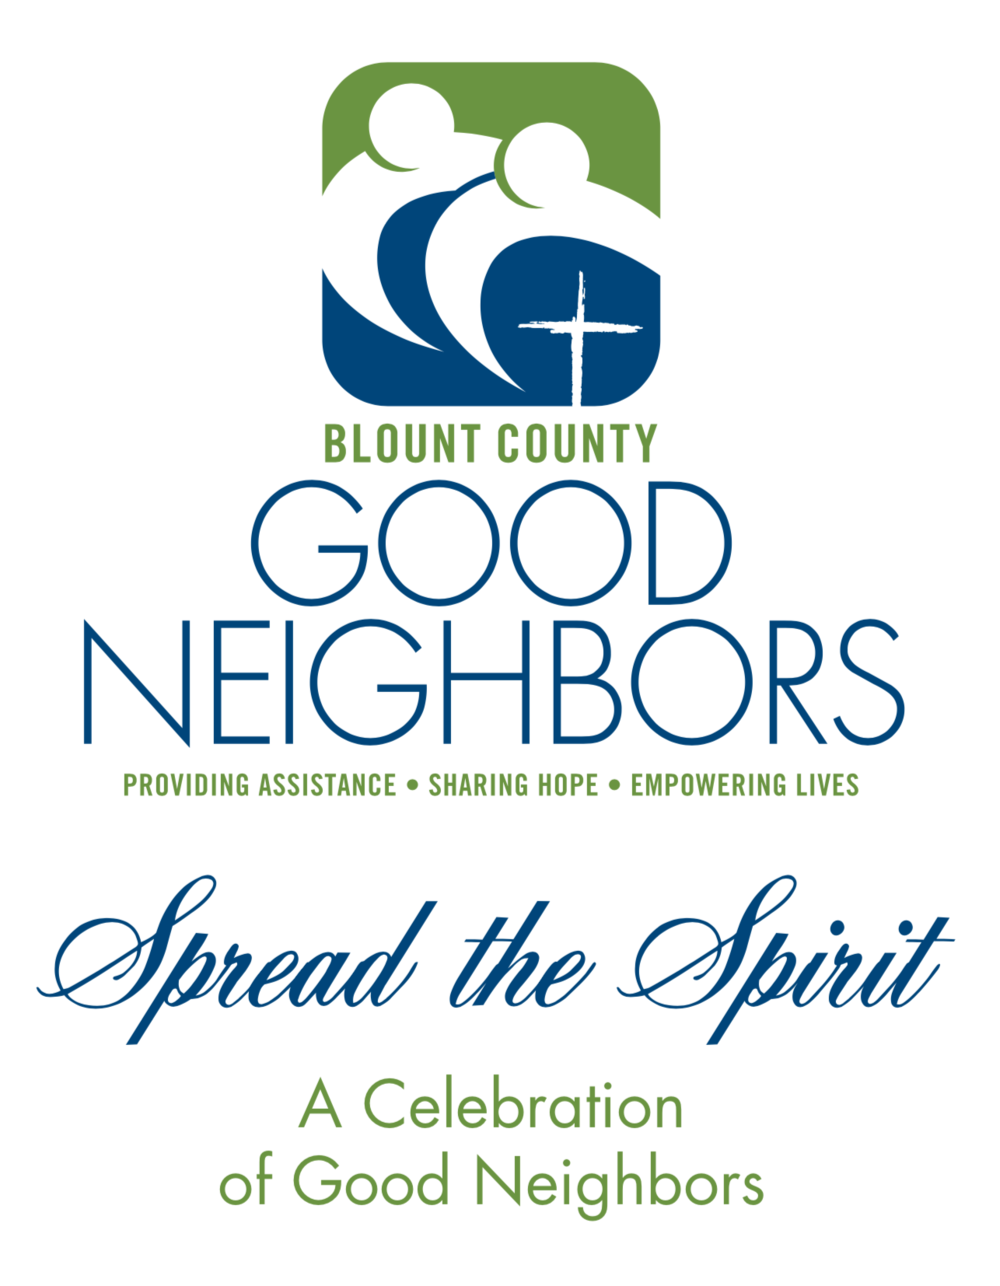 Spirit of Good Neighbors Dinner 2018 - Join us for our 6th Annual Spread the Spirit dinner!We will gather together to acknowledge and honor many of the good neighbors of Blount County.The event will take place at New Providence Presbyterian Church on November 1 @ 6:00 p.m.Nominations for the 2018 Awards are now open and will continue until October 1, 2018.